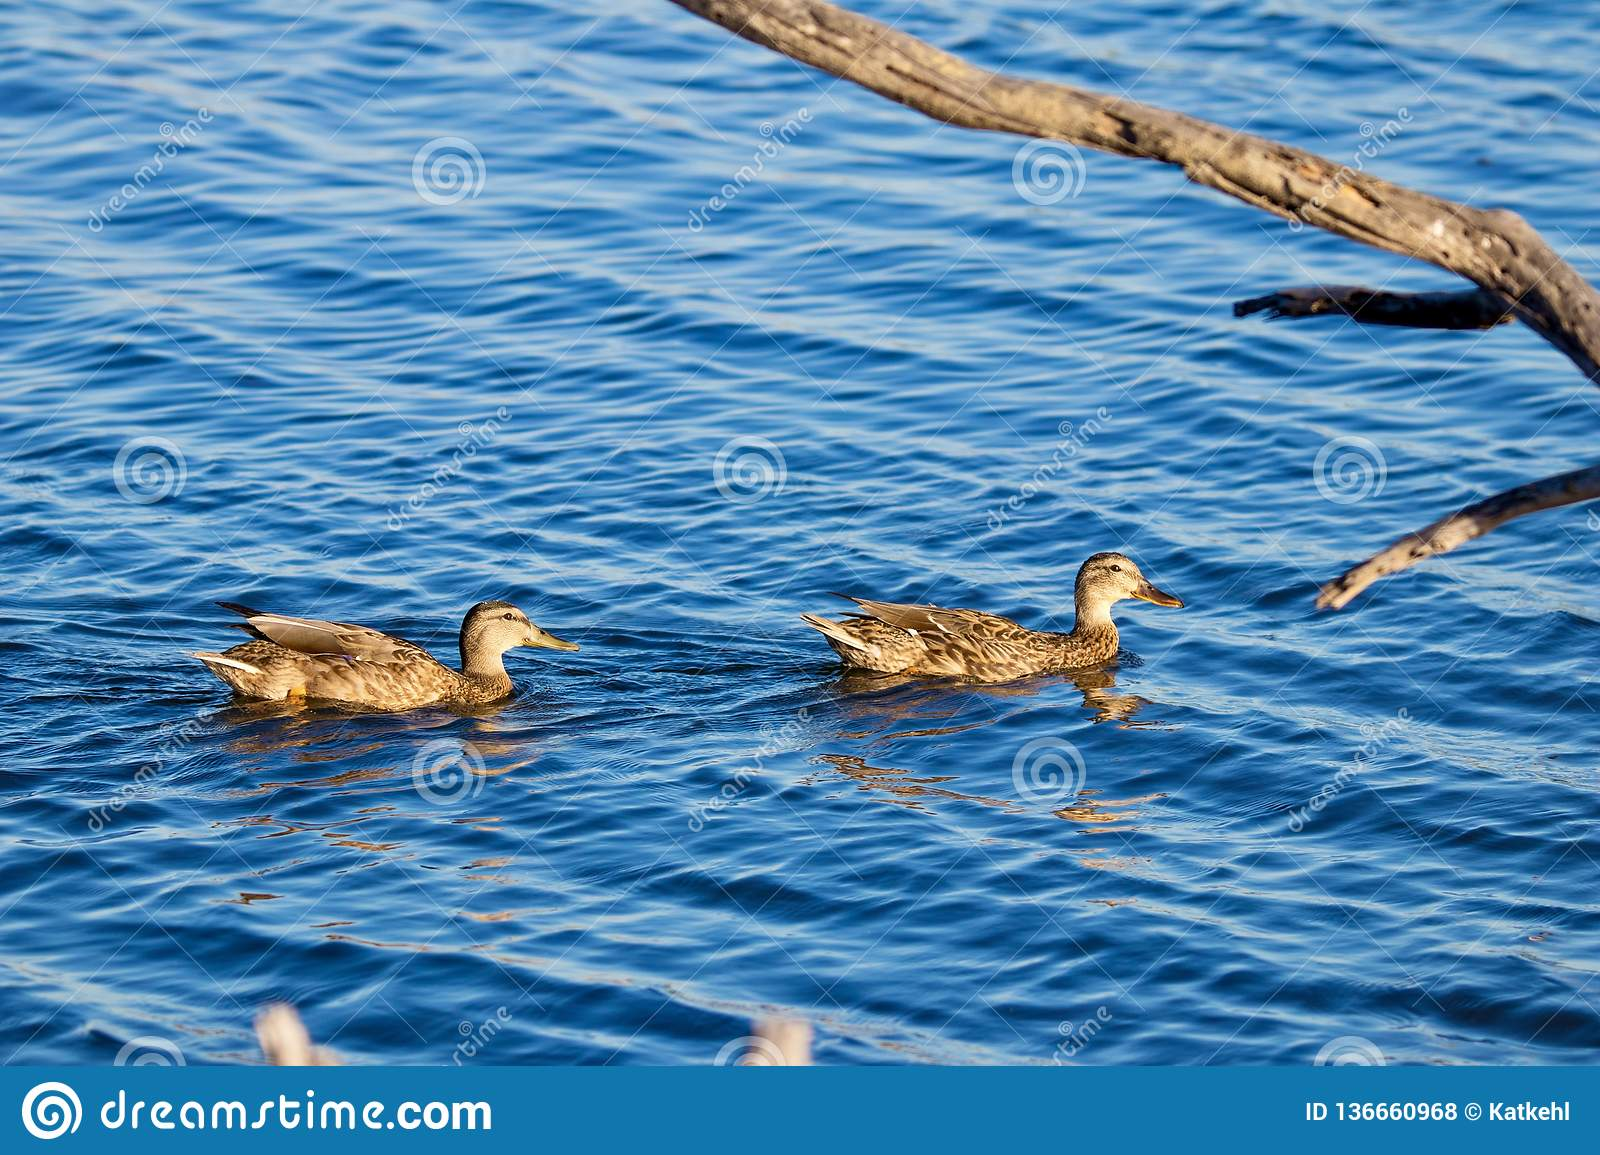 Ducks swimming in water